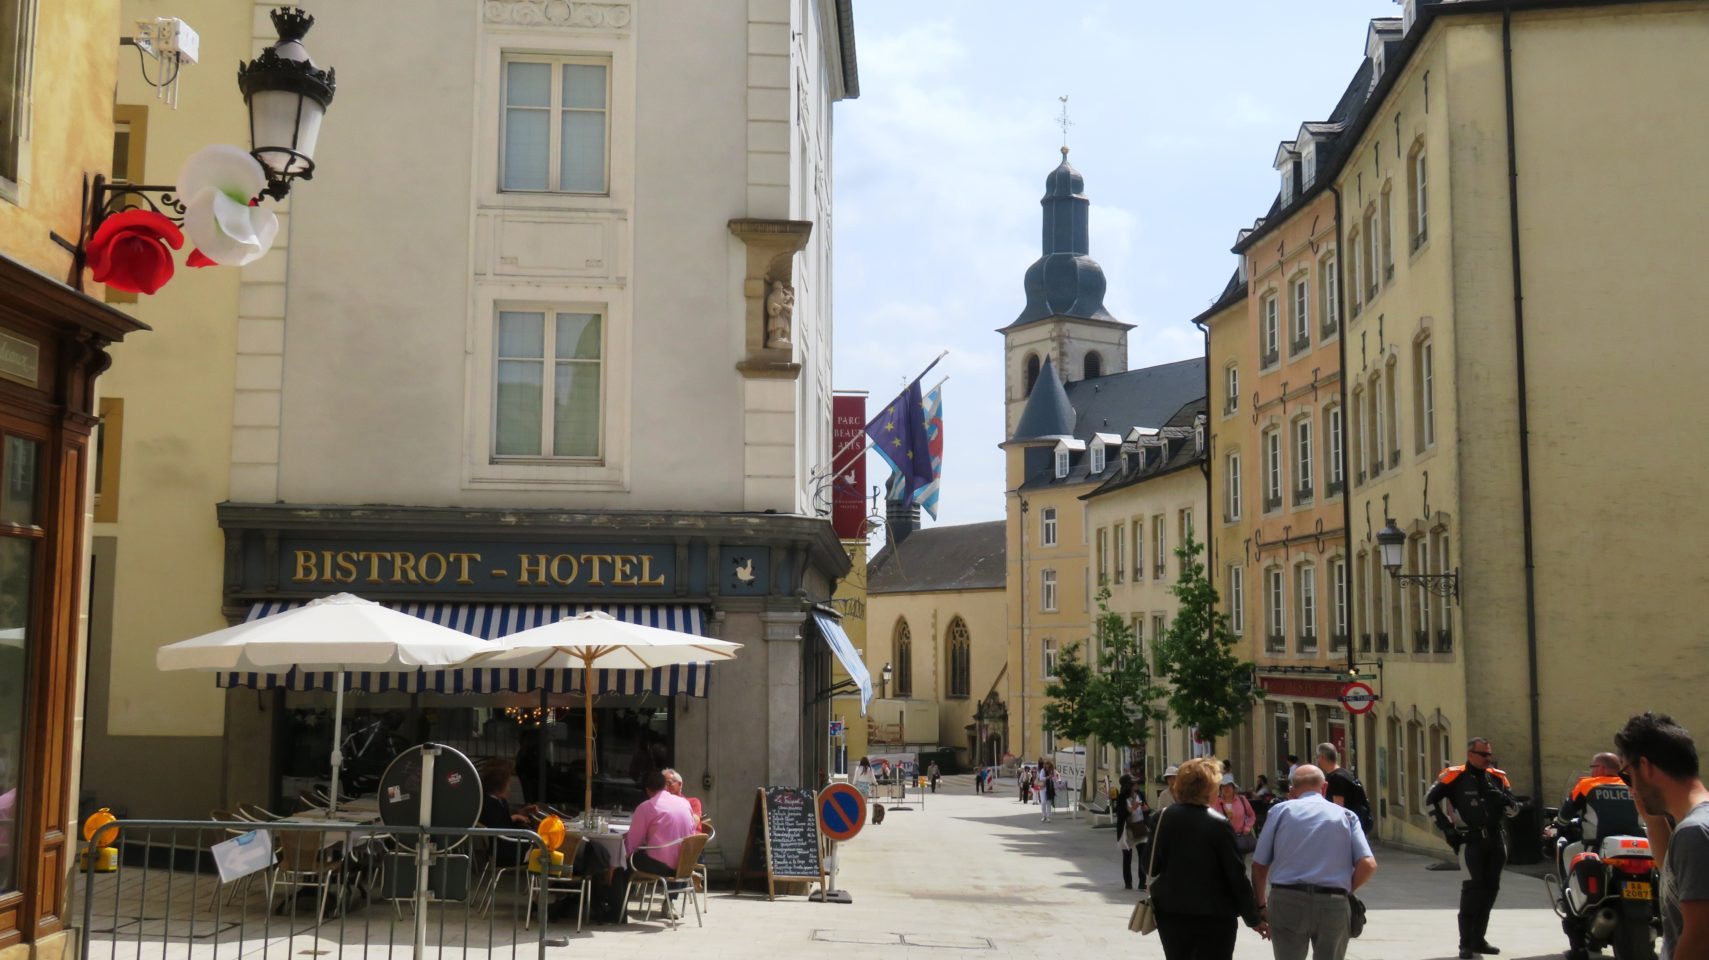 Strolling thru the Ville Haute (Upper Town) of Luxembourg City, Luxembourg